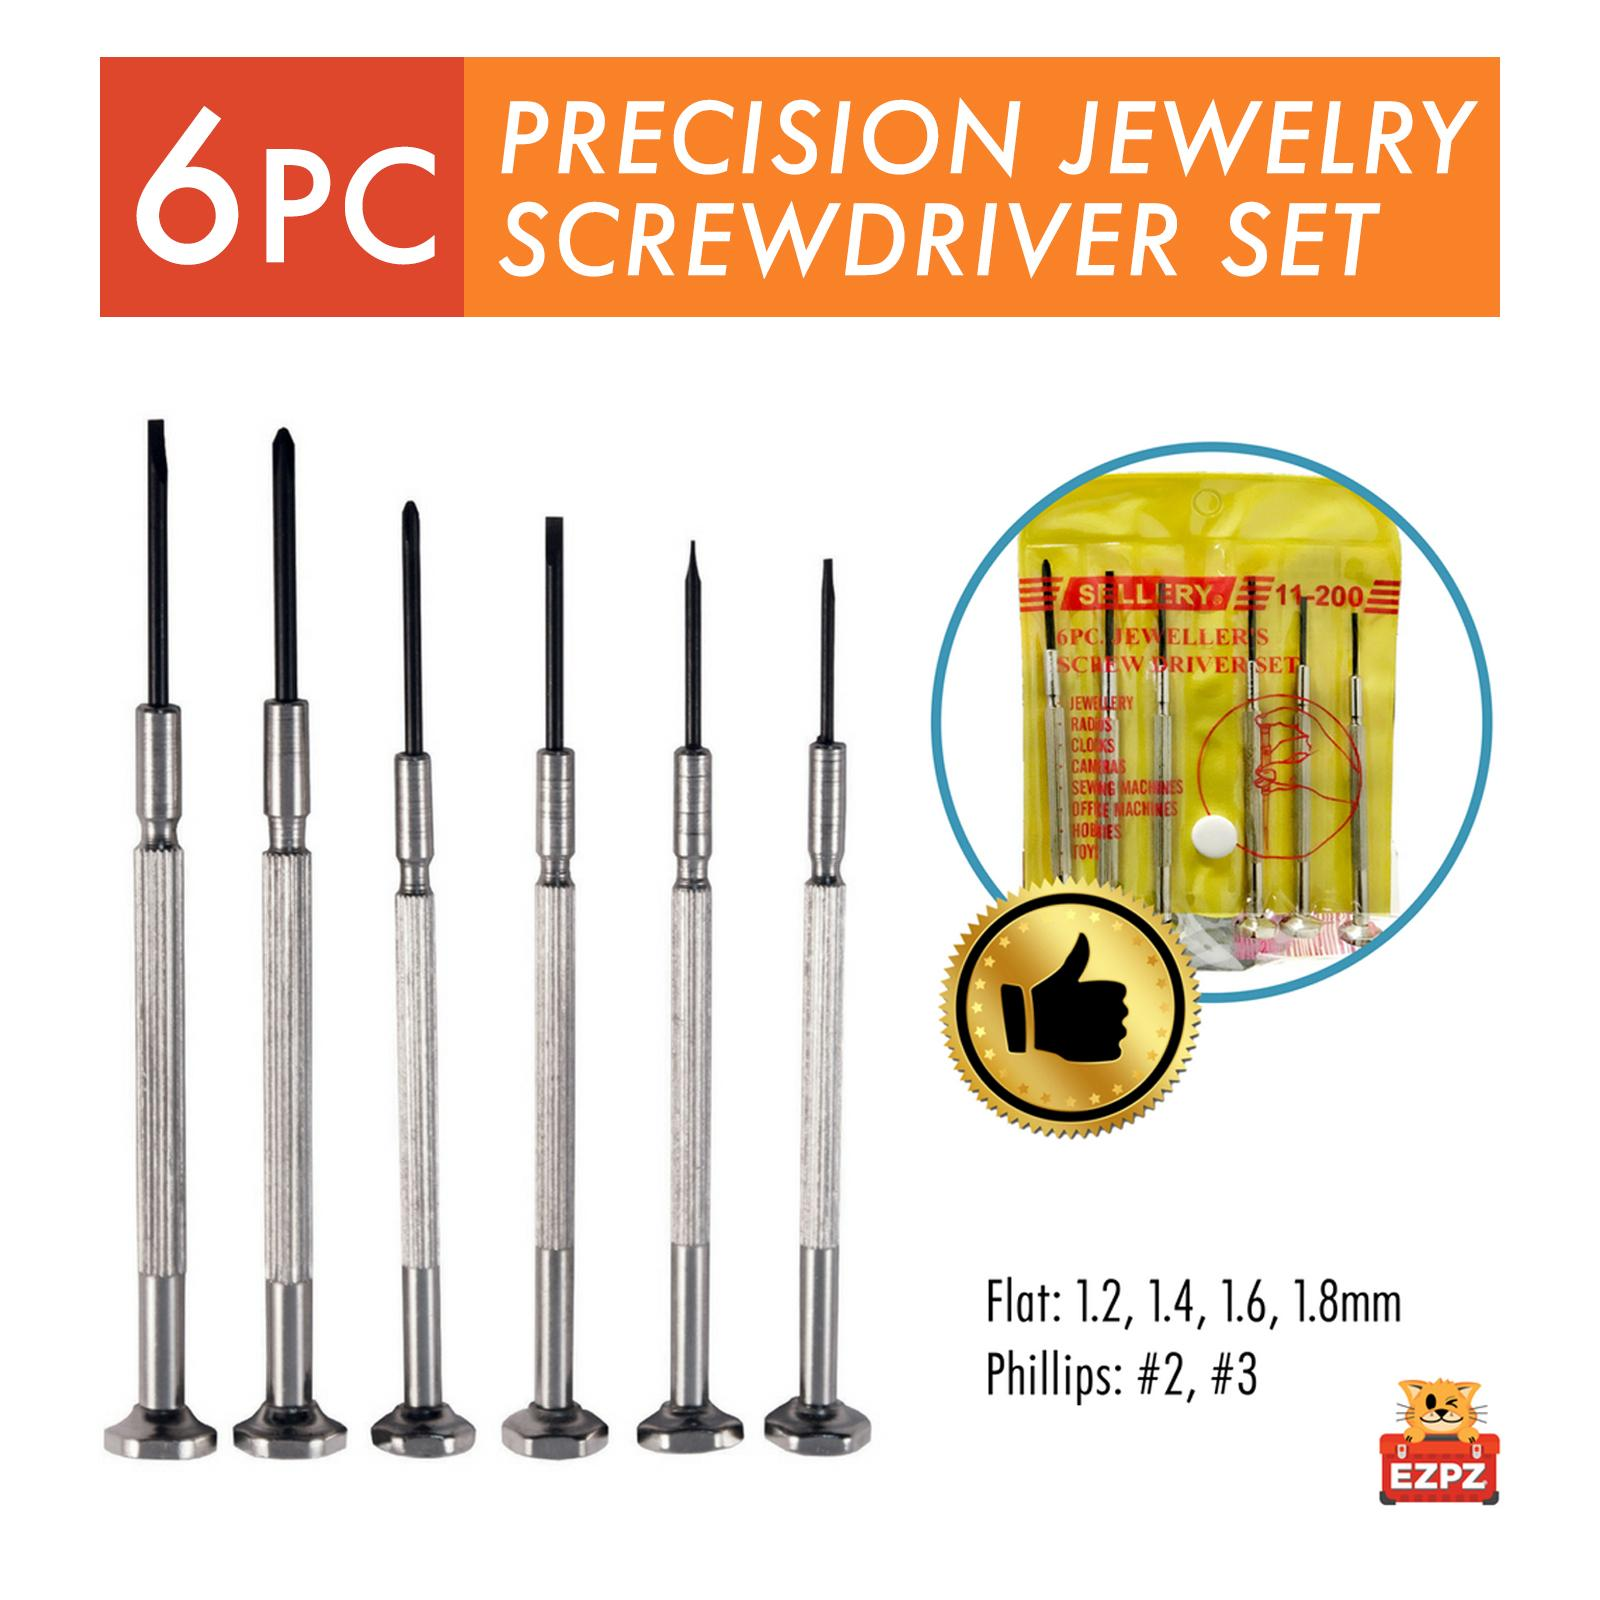 2 PACK - SELLERY 6 PC Precision Screwdriver Set - Jewellery Spectacles Watch Laptop Repair